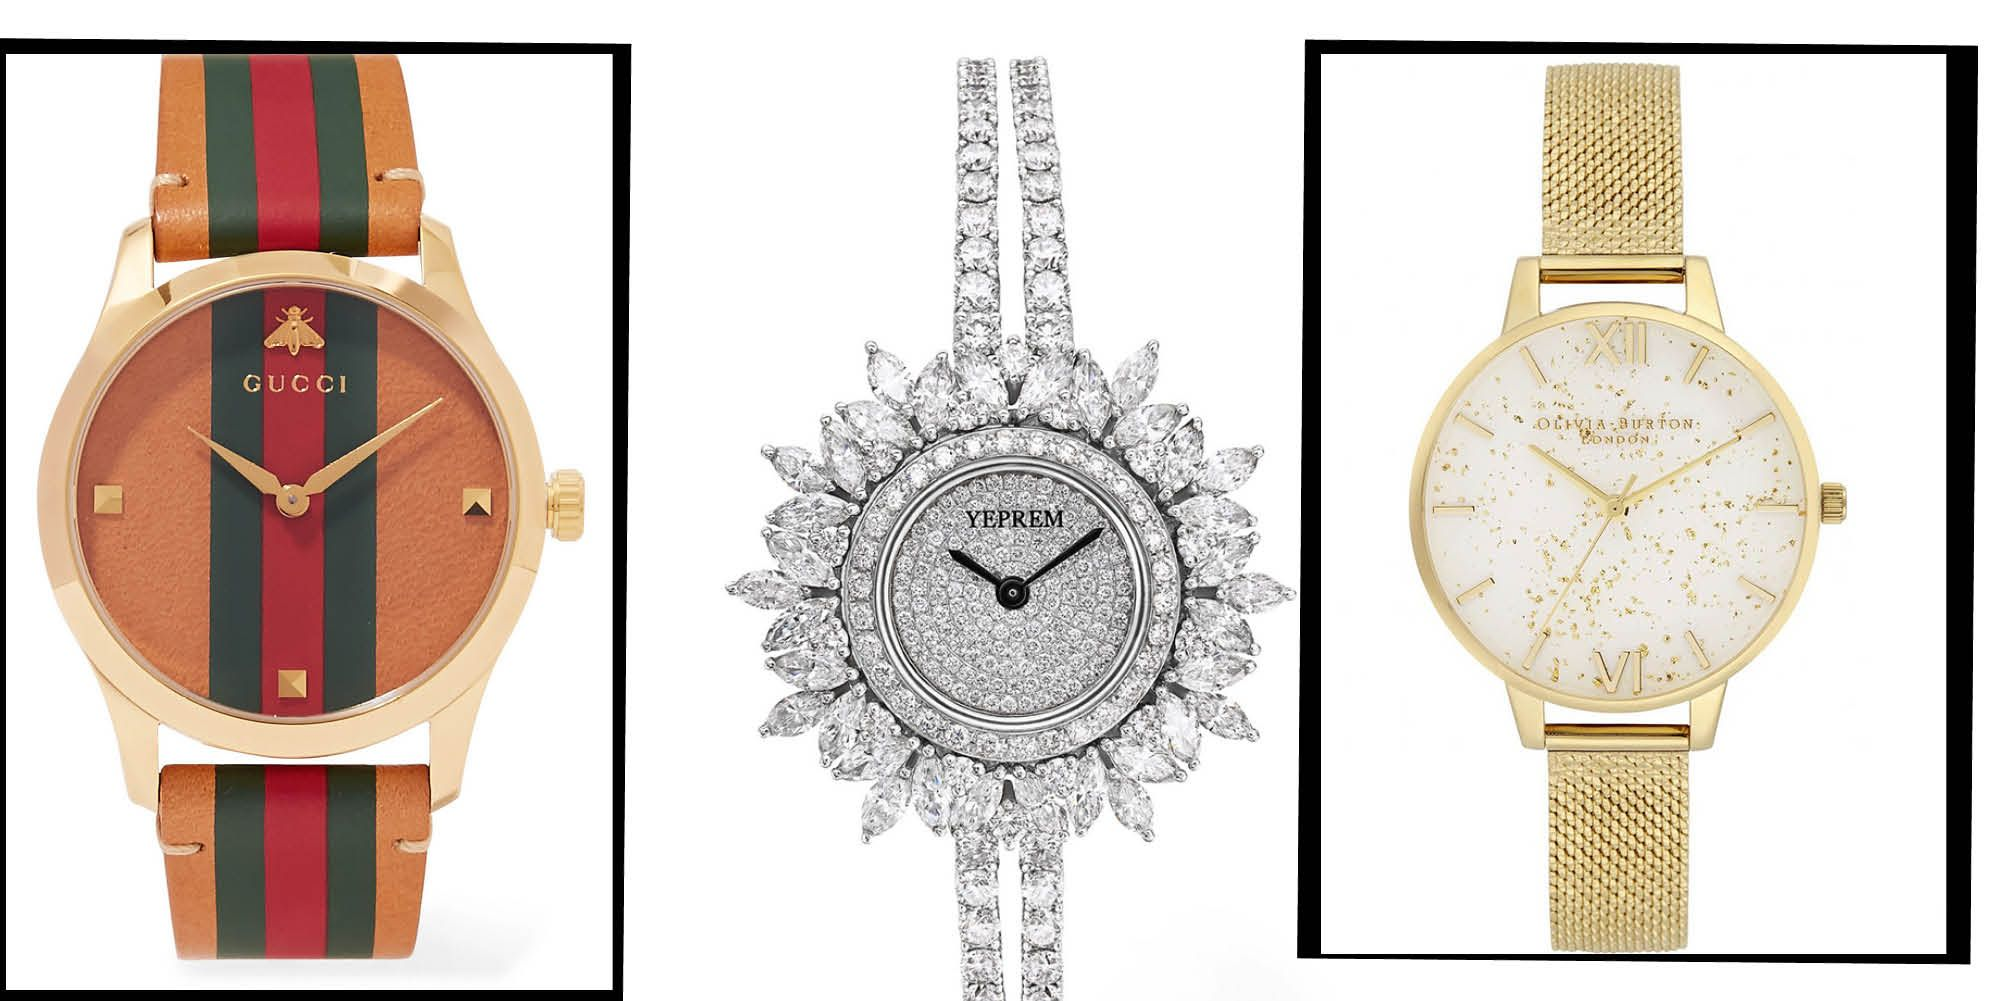 989e88432c 23 Best Women's Watches 2019 - Top Fashion Watches For Women